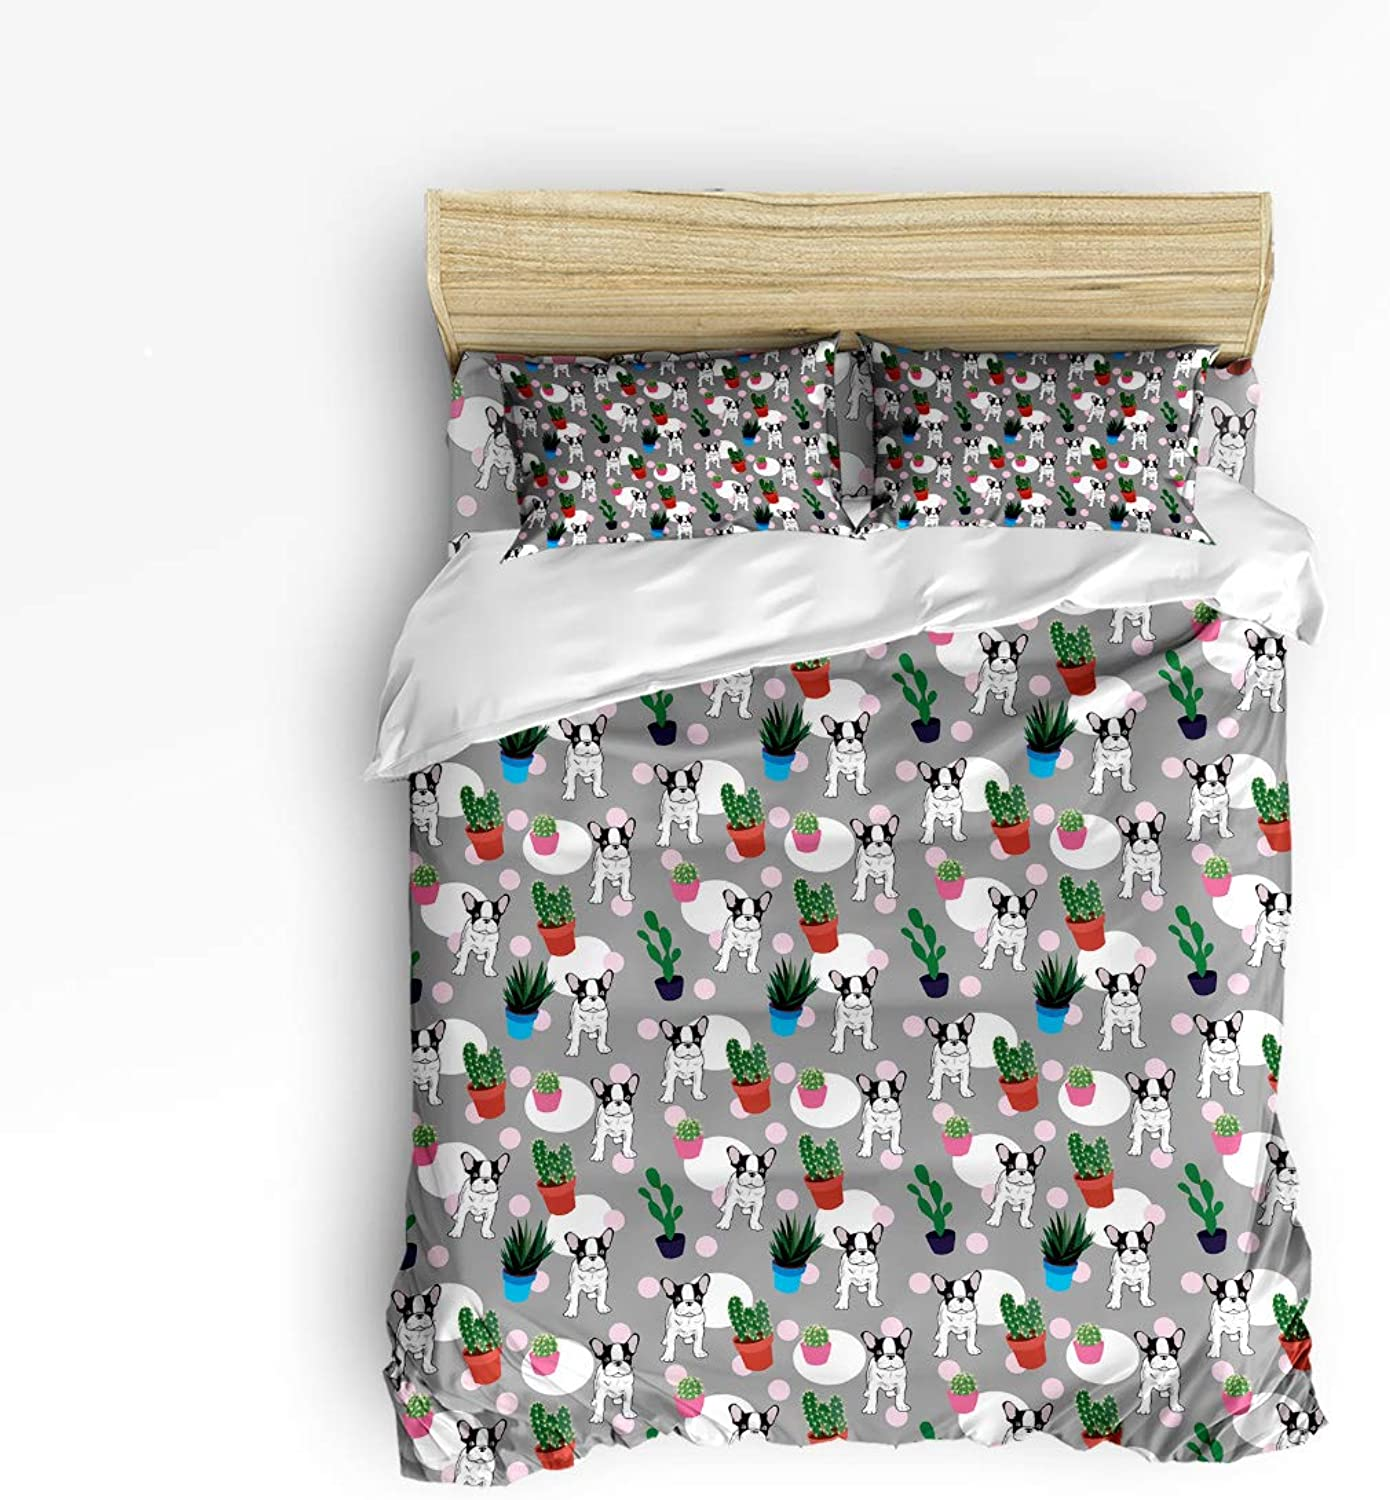 USOPHIA Twin Size 4 Pieces Bed Sheets Set, Bulldog and Cactus Plants Spikes Cartoon Like Art Print, 4 Pieces Bed Sheets Set,